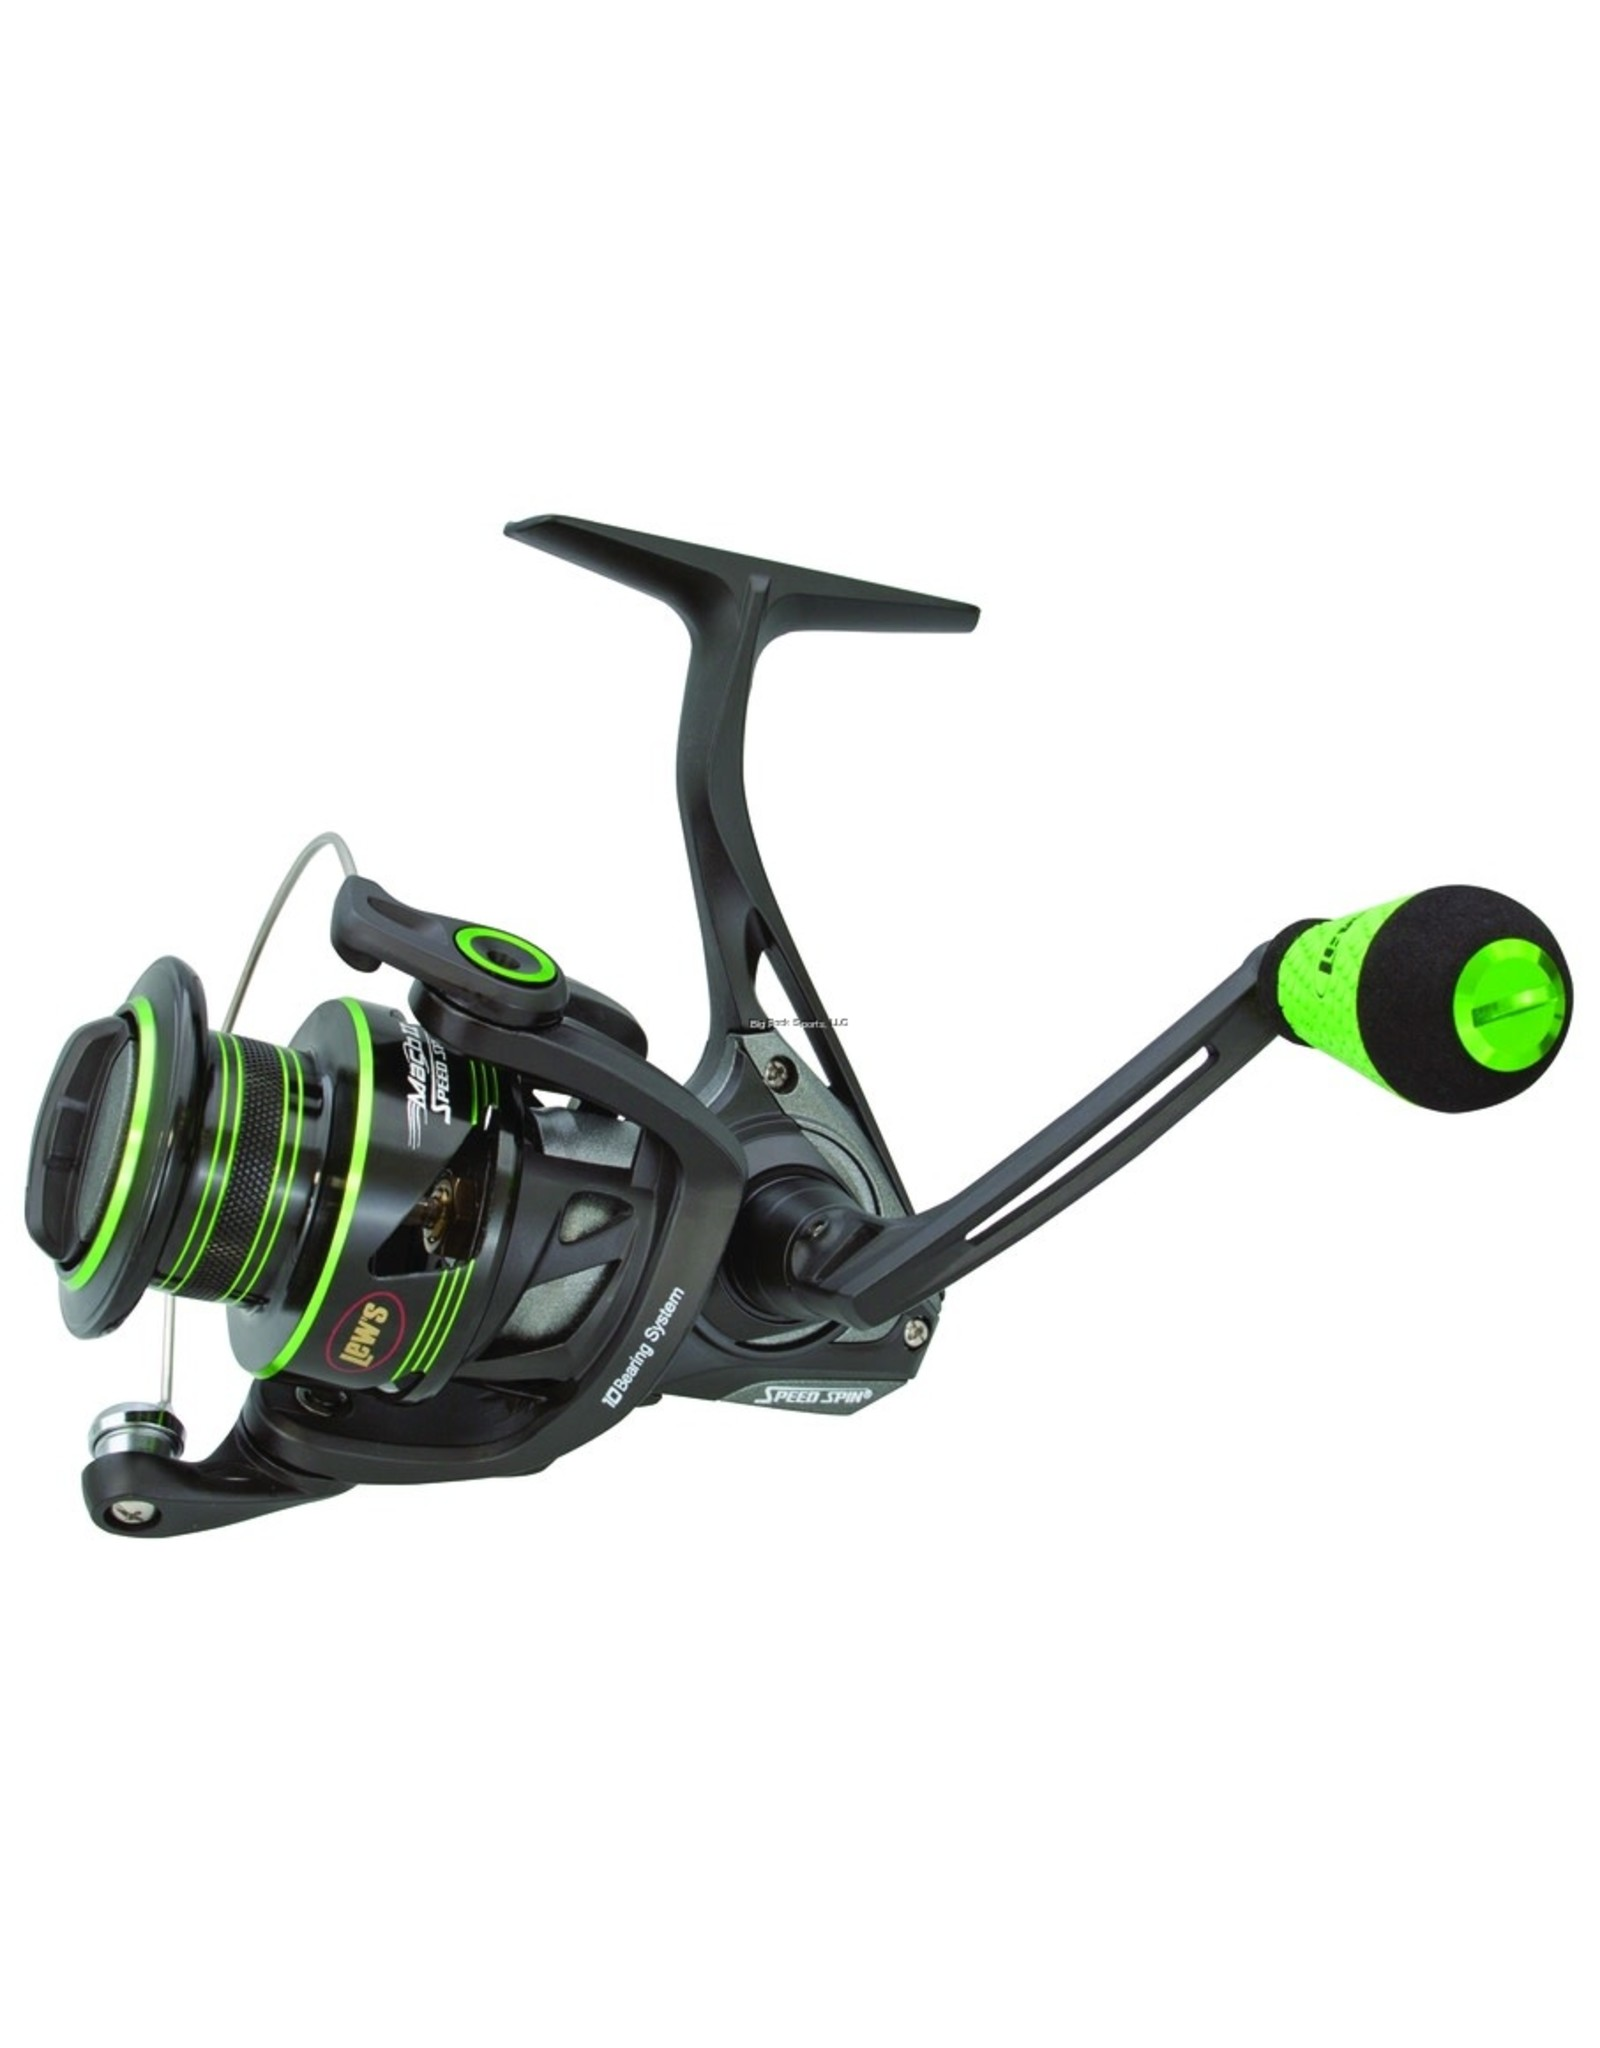 MH2-300 Mach II Speed Spin Spinning Reel